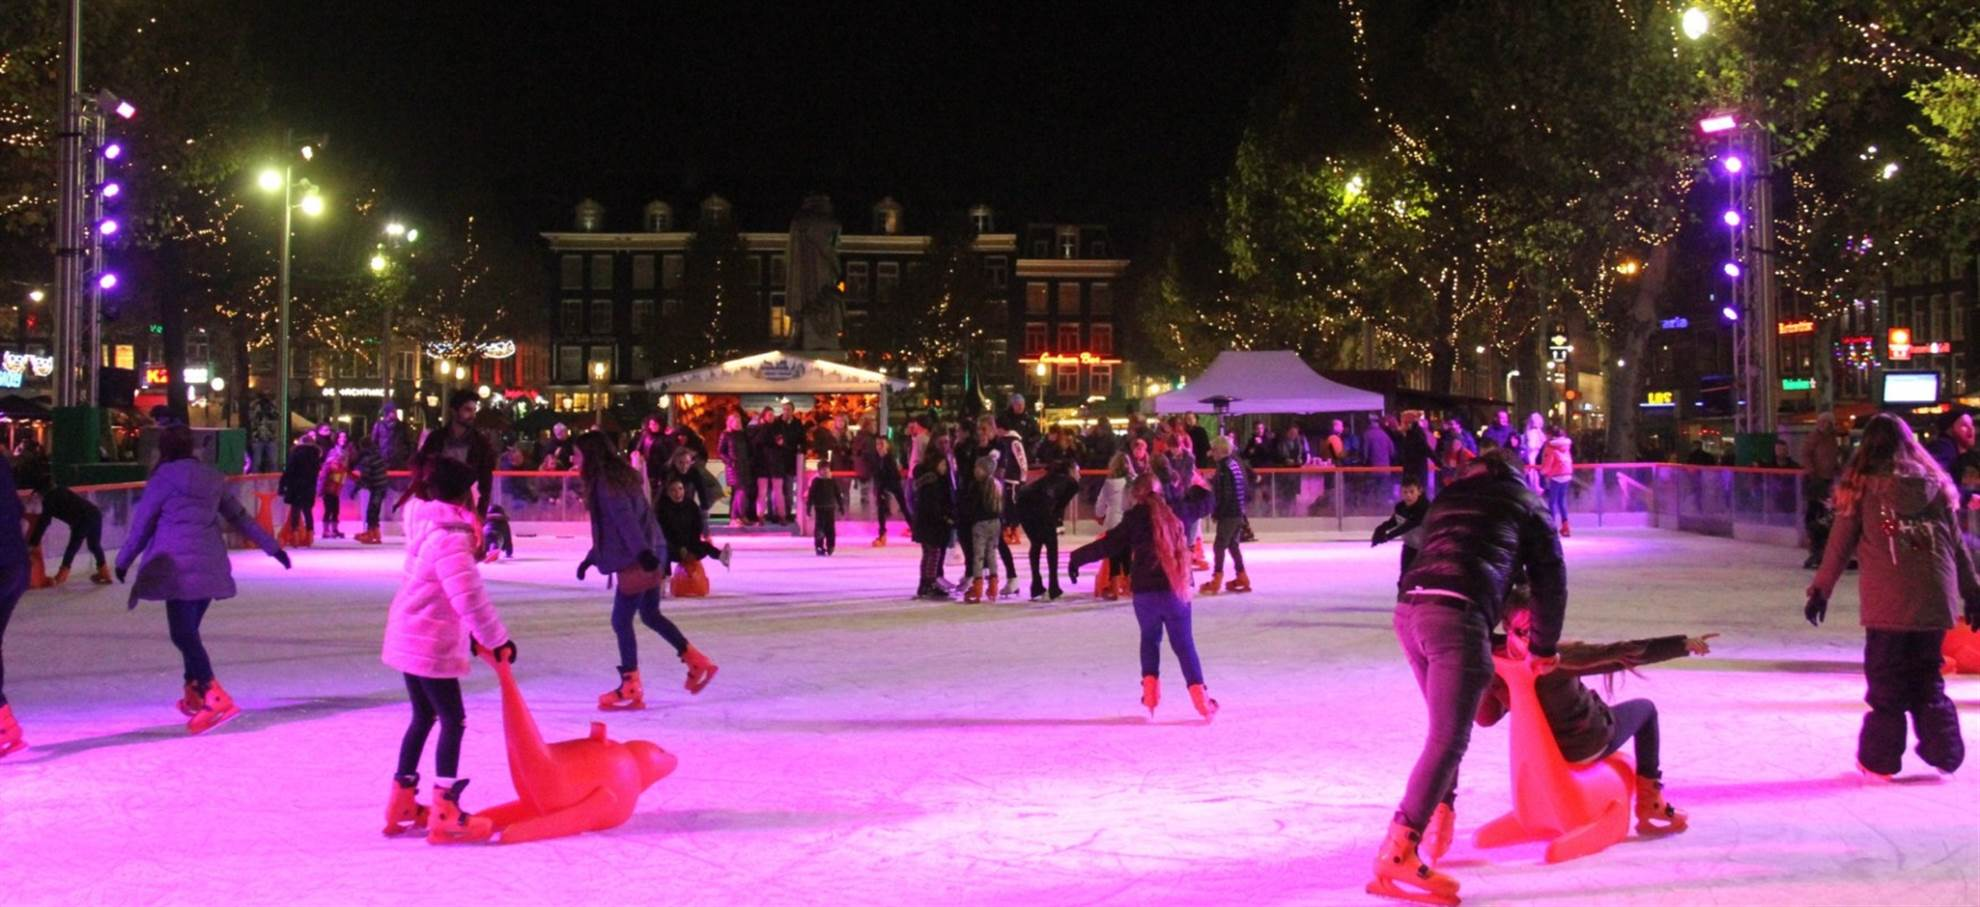 Ice skating on Rembrandt Square